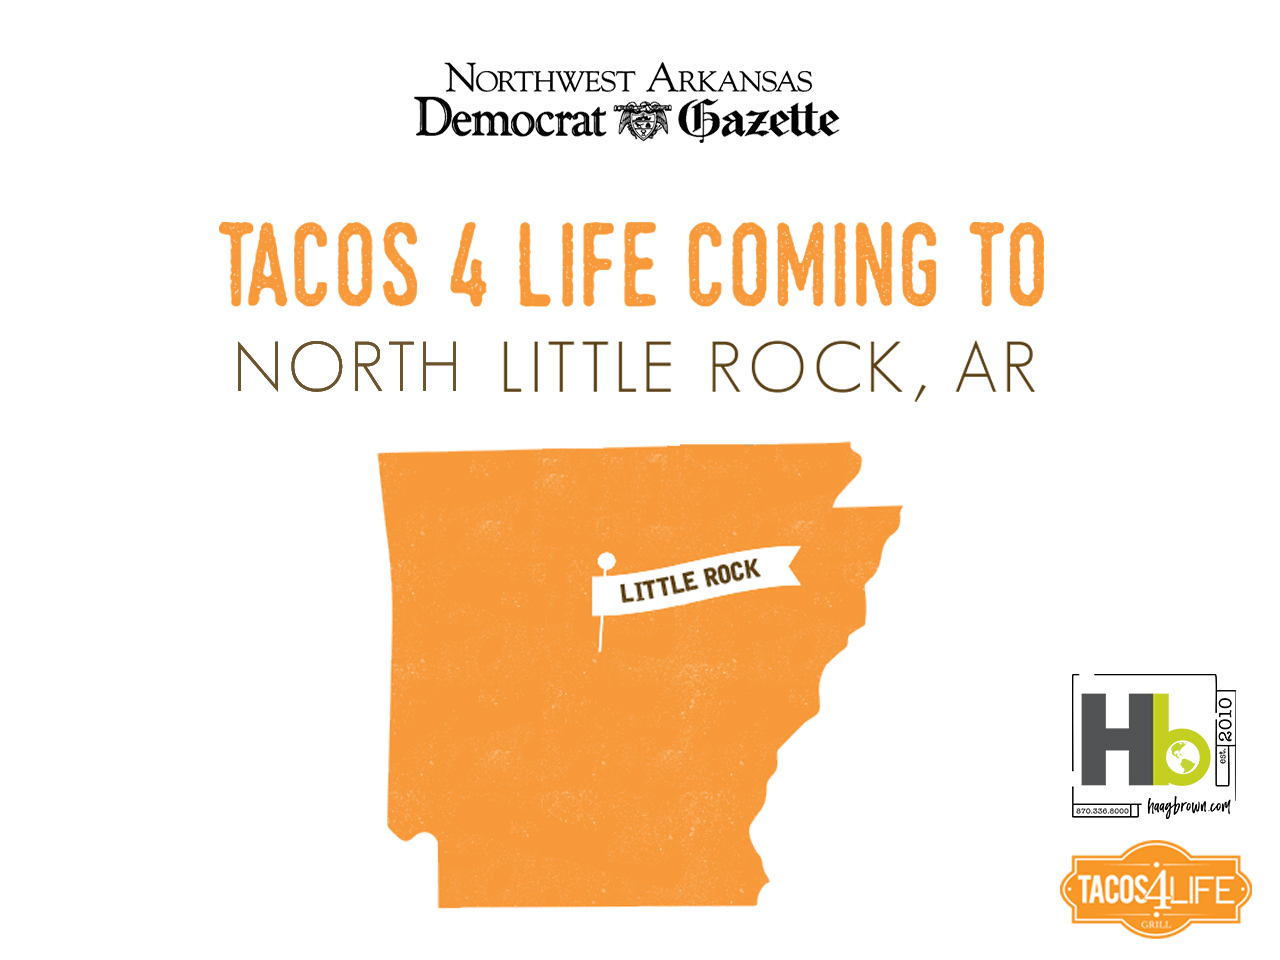 Taco Restaurant to Open Location Near North Little Rock Mall